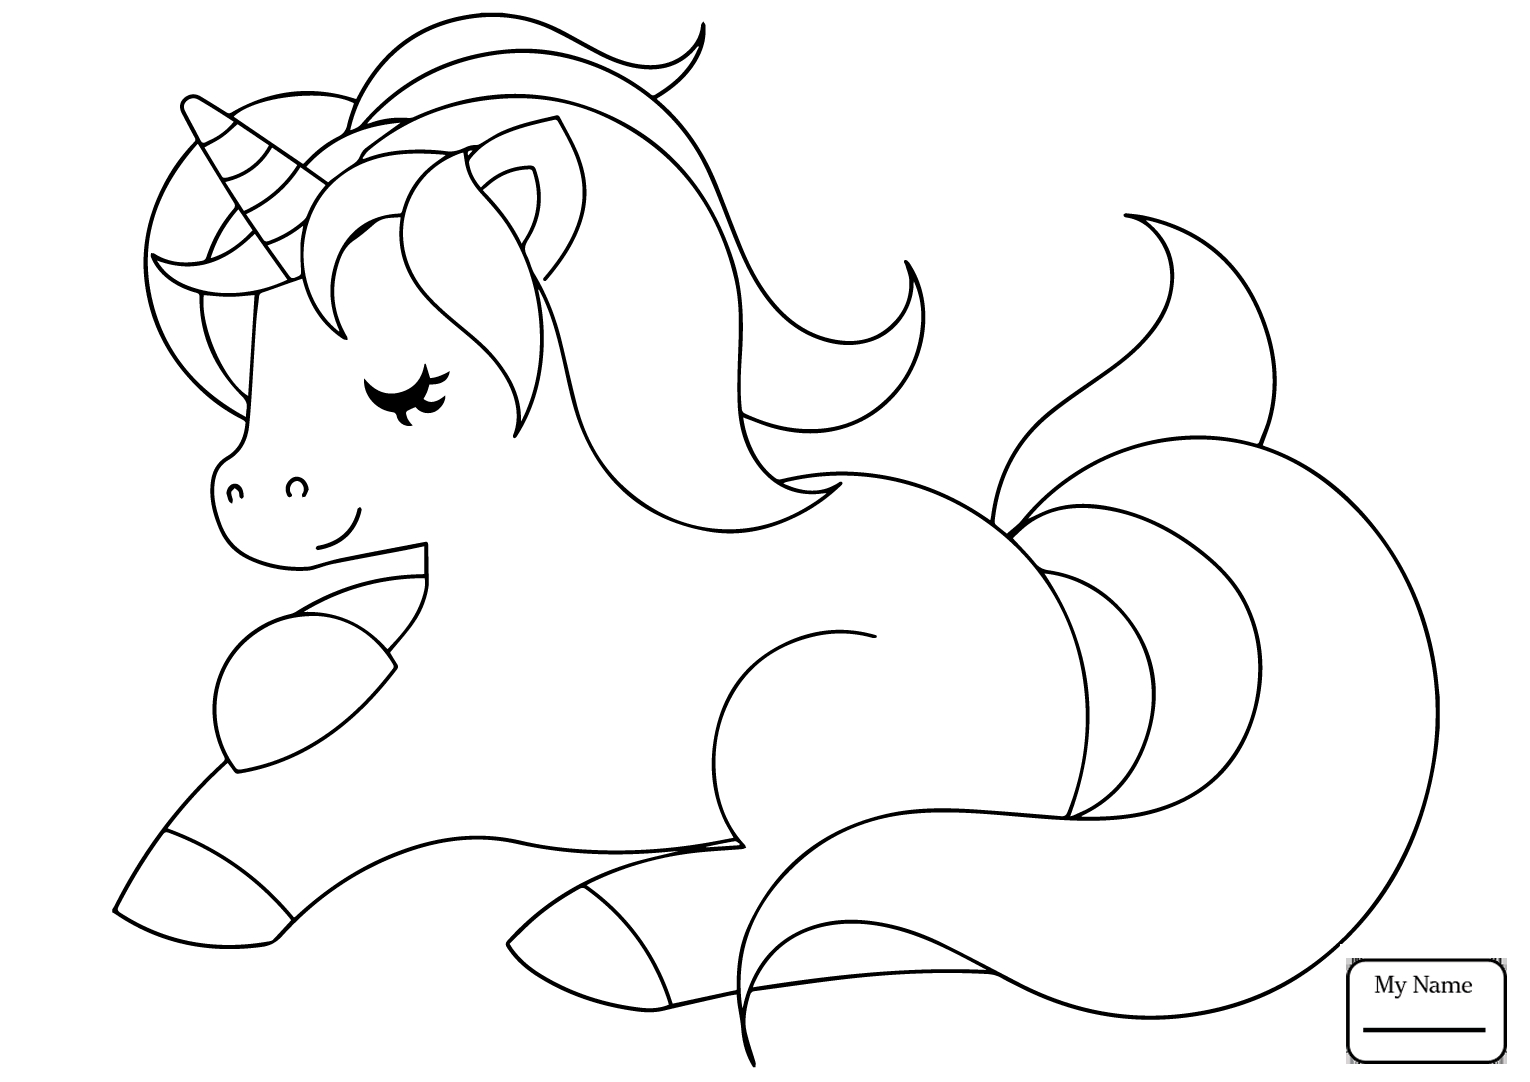 - Unicorn Coloring Page For Preschoolers – Coloring.rocks!